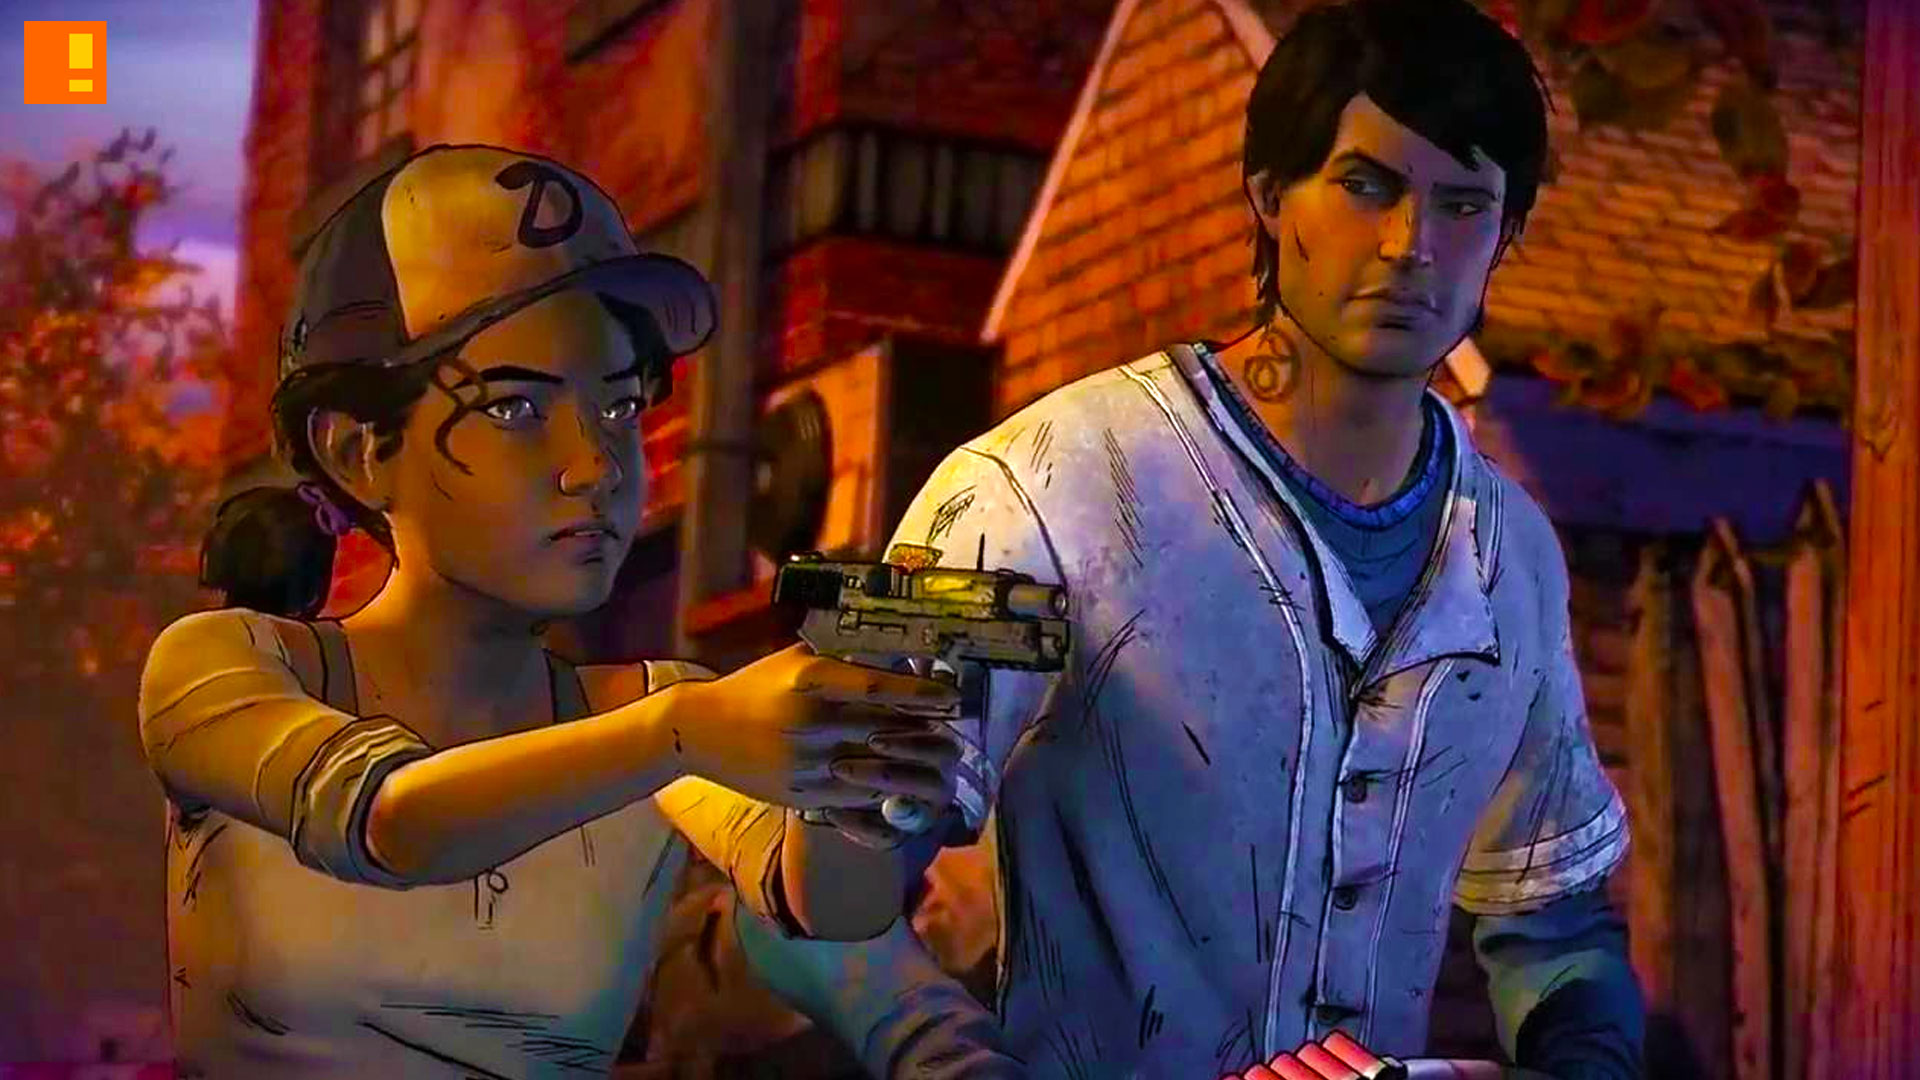 clementine, season 3,twd, the walking dead, telltale games, teaser, the action pixel,entertainment on tap